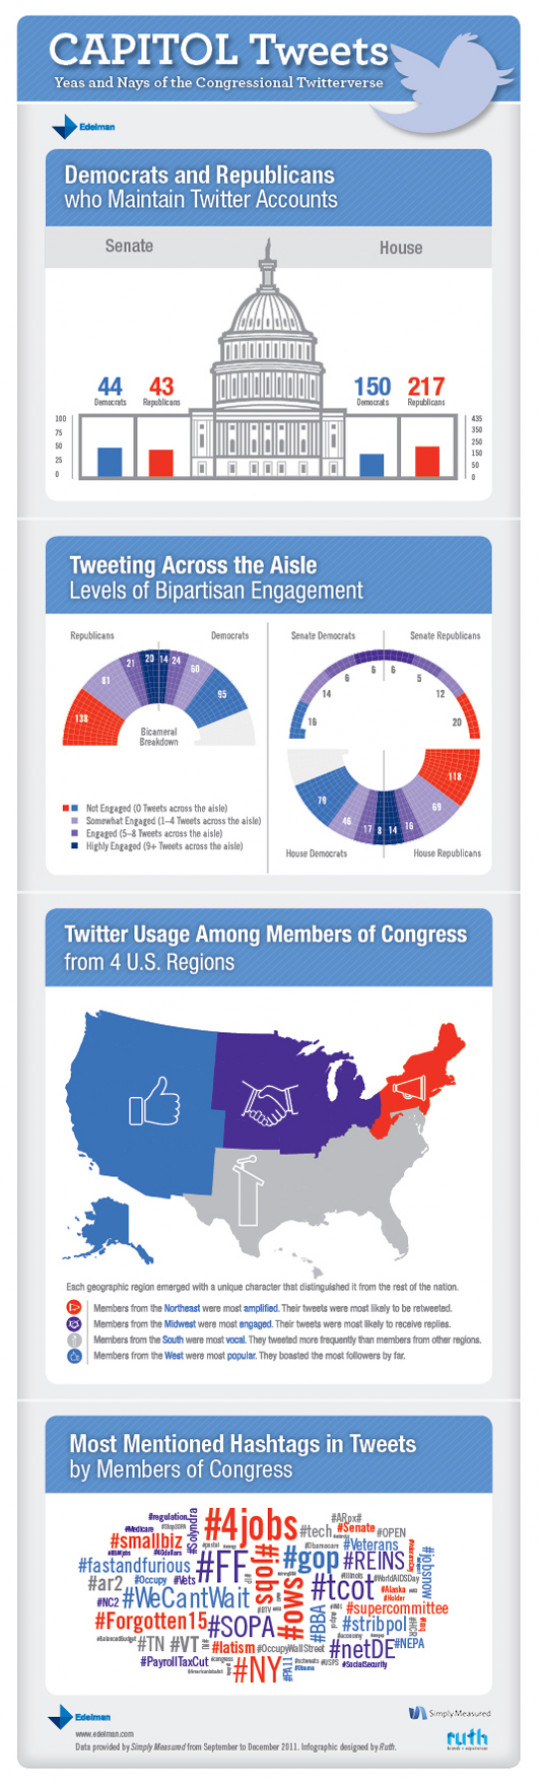 Capitol Tweets: Yeas and Nays of the Congressional Twitterverse